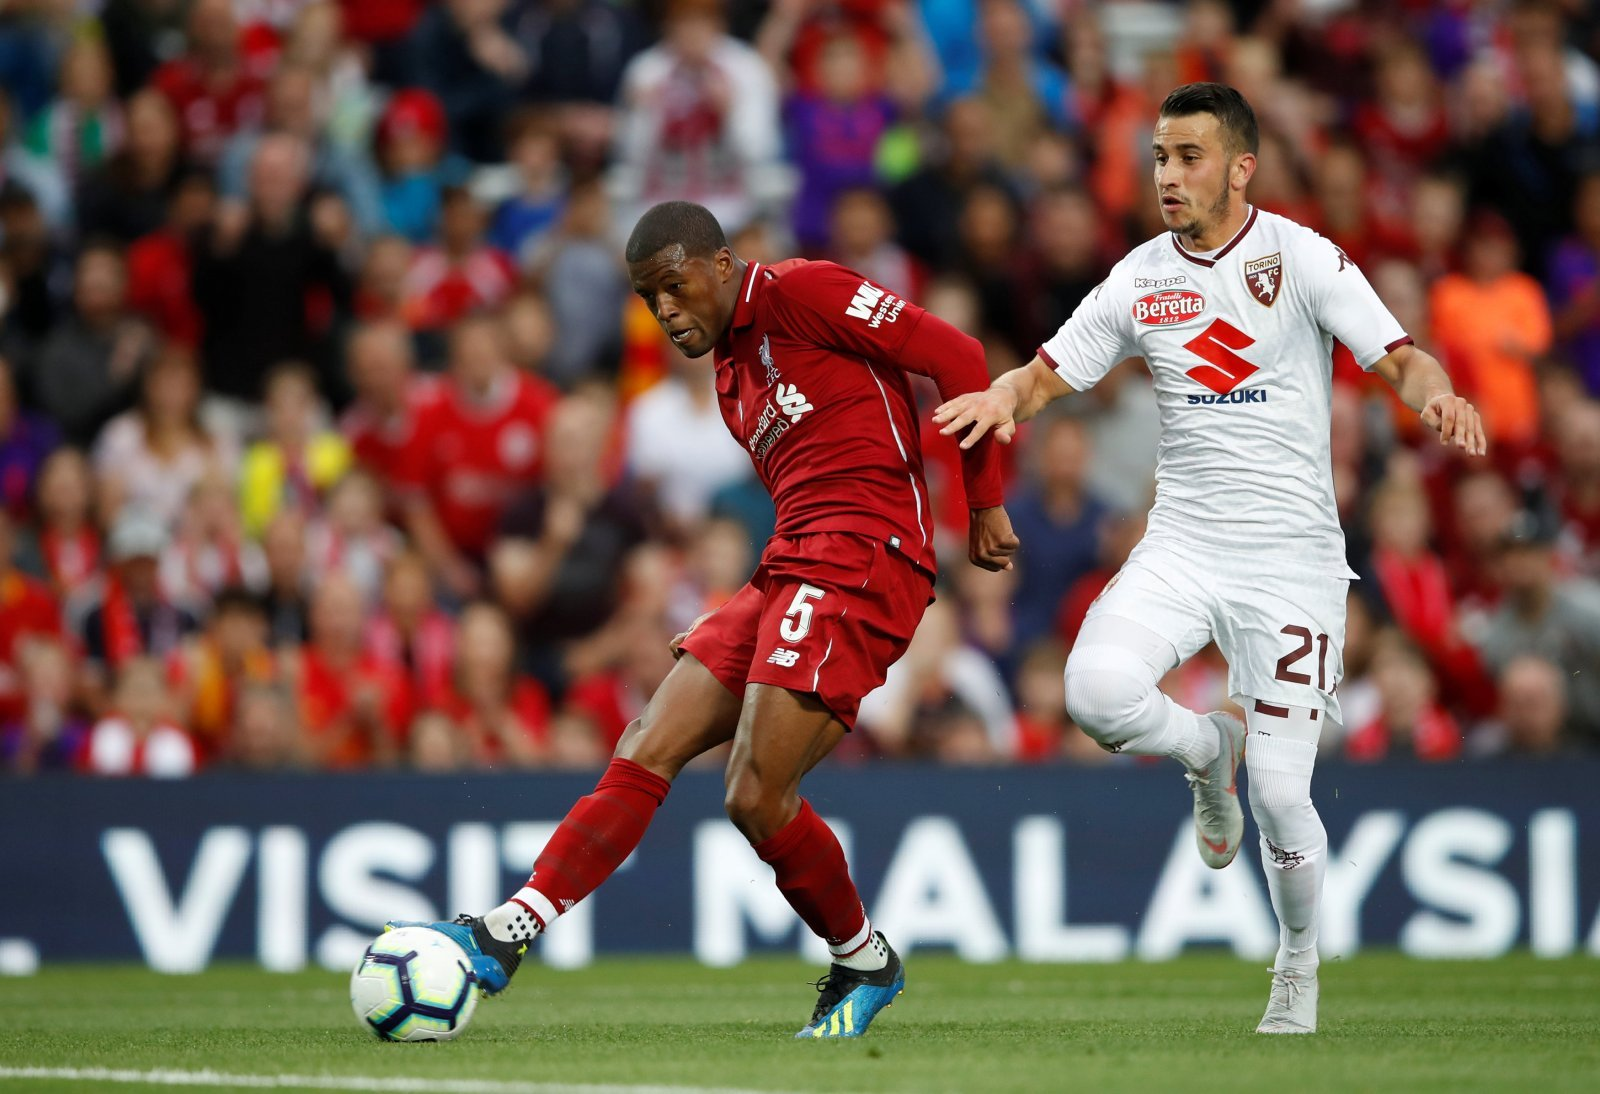 Gini Wijnaldum can help Liverpool forget about Nabil Fekir's failed move